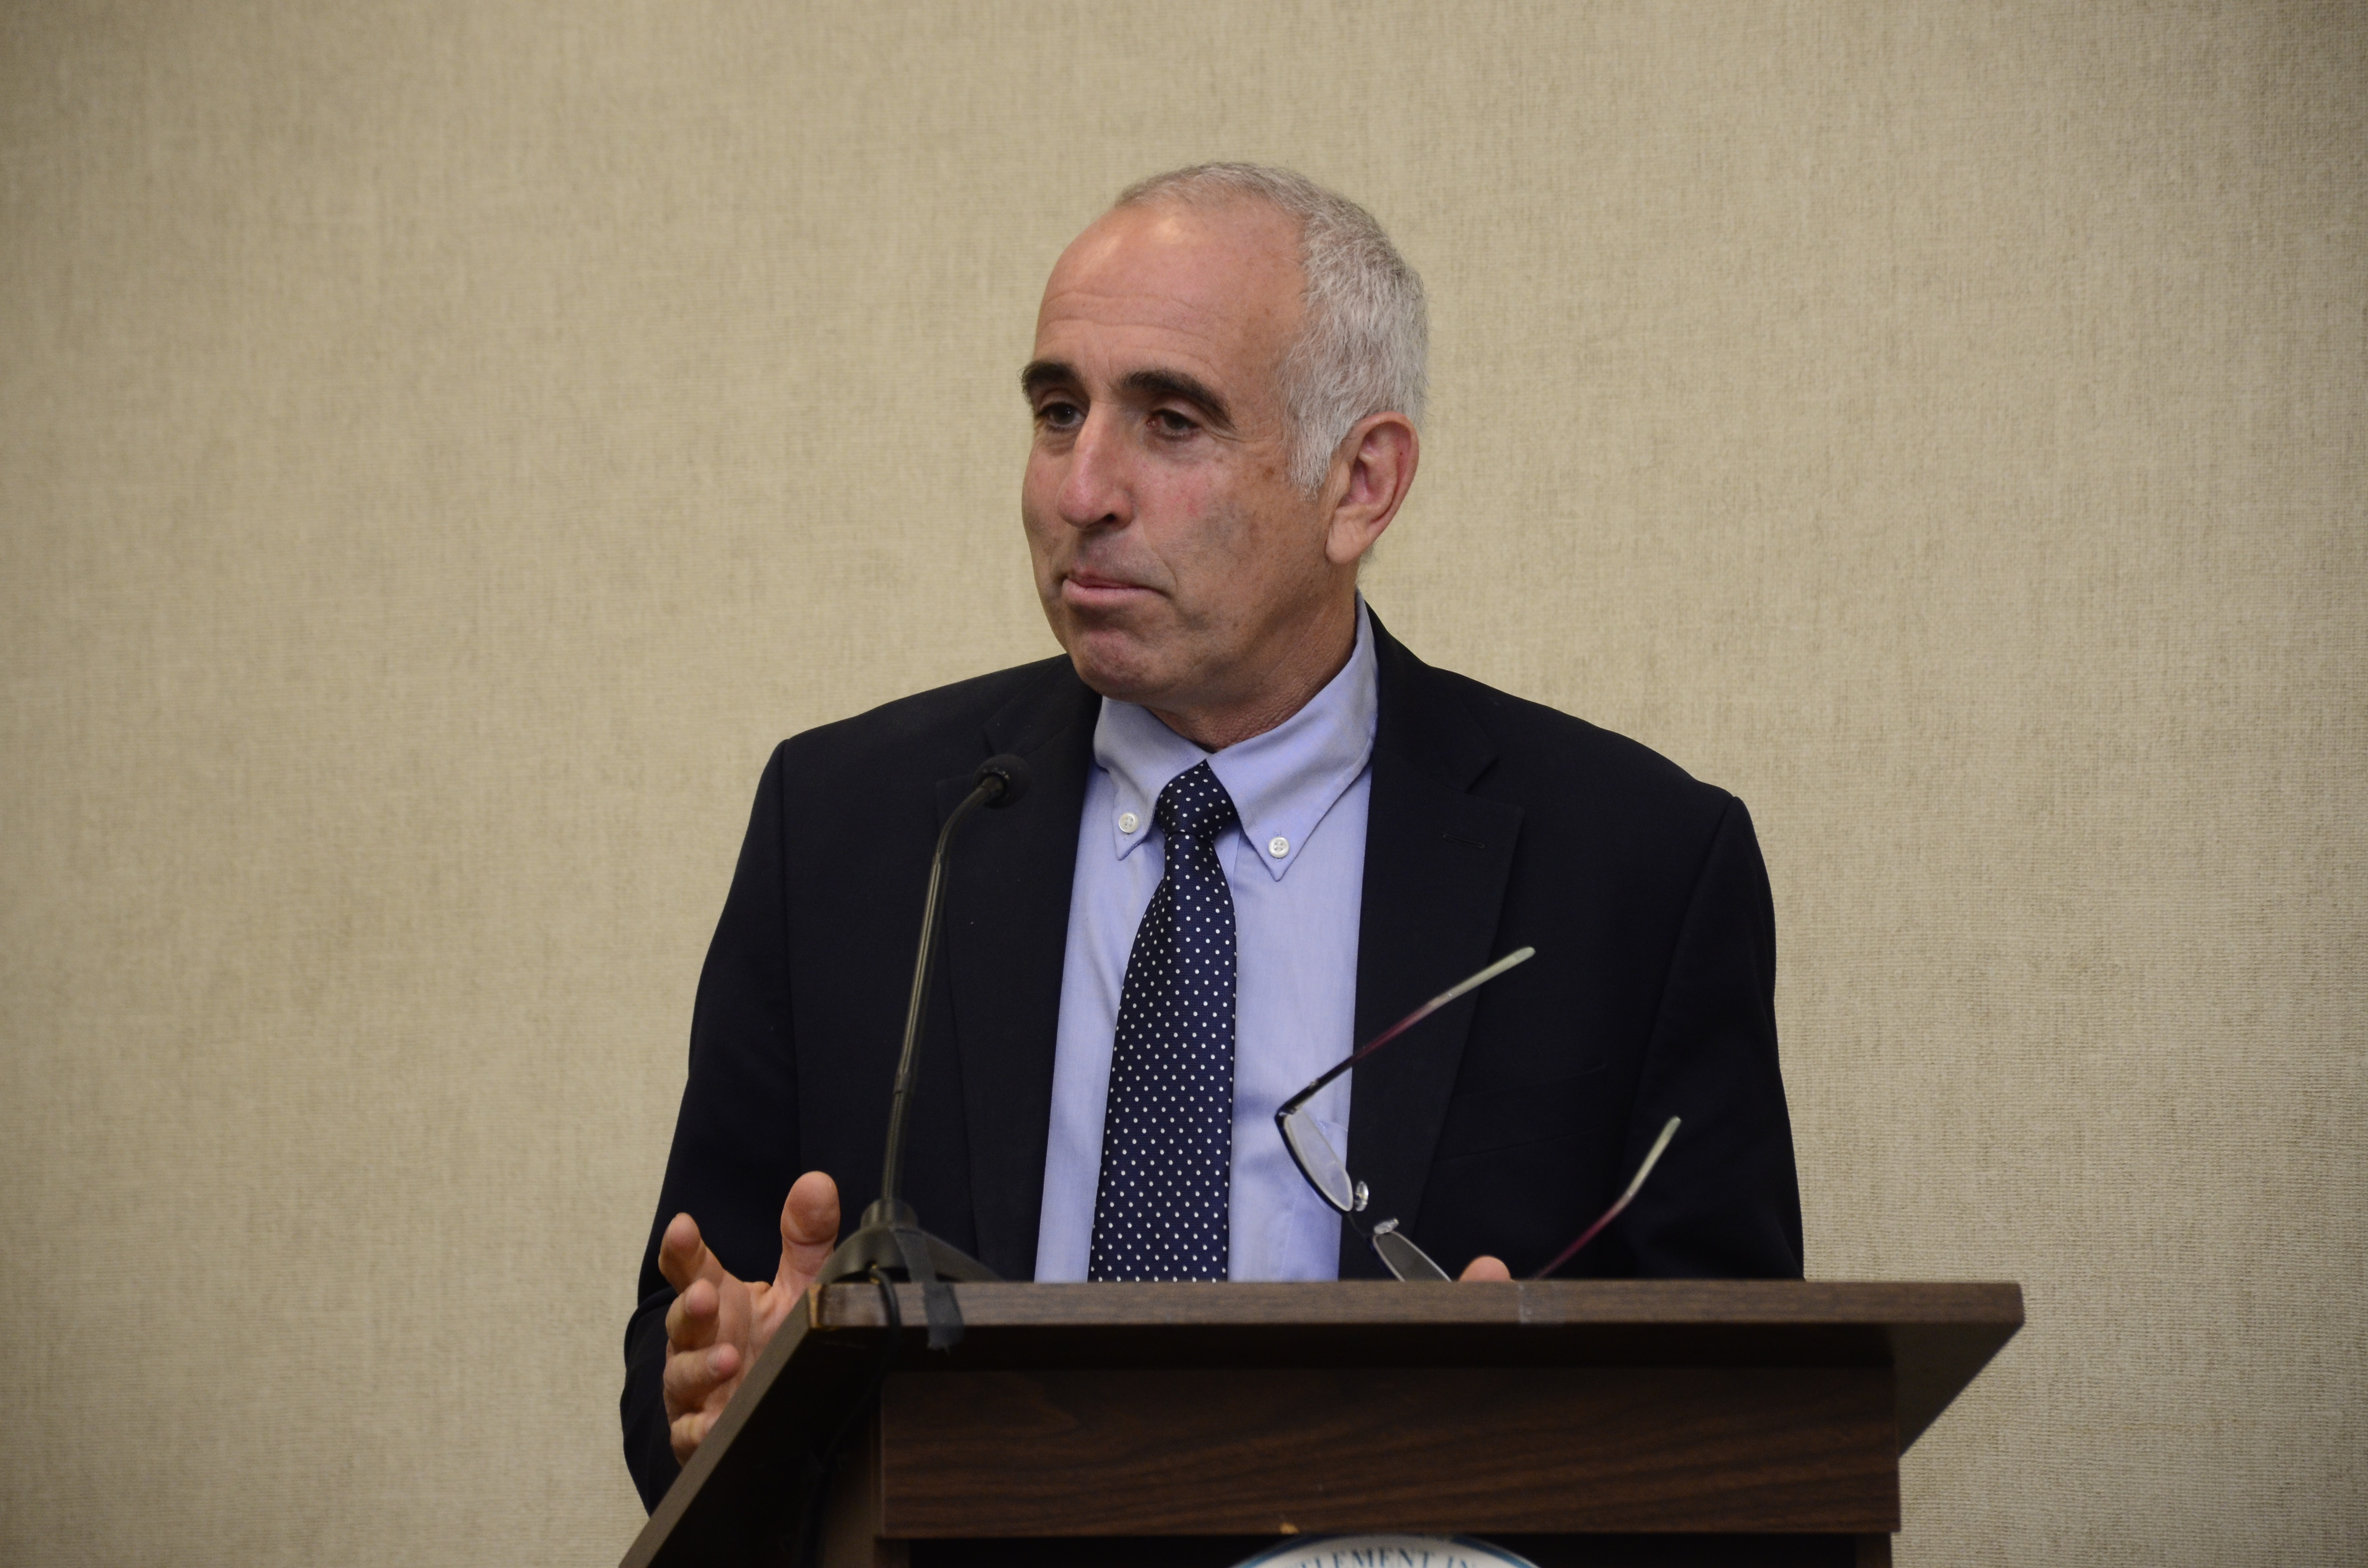 Southampton Town Supervisor Jay Schneiderman presented the 2020 budget to the other board members on Thursday morning. GREG WEHNER